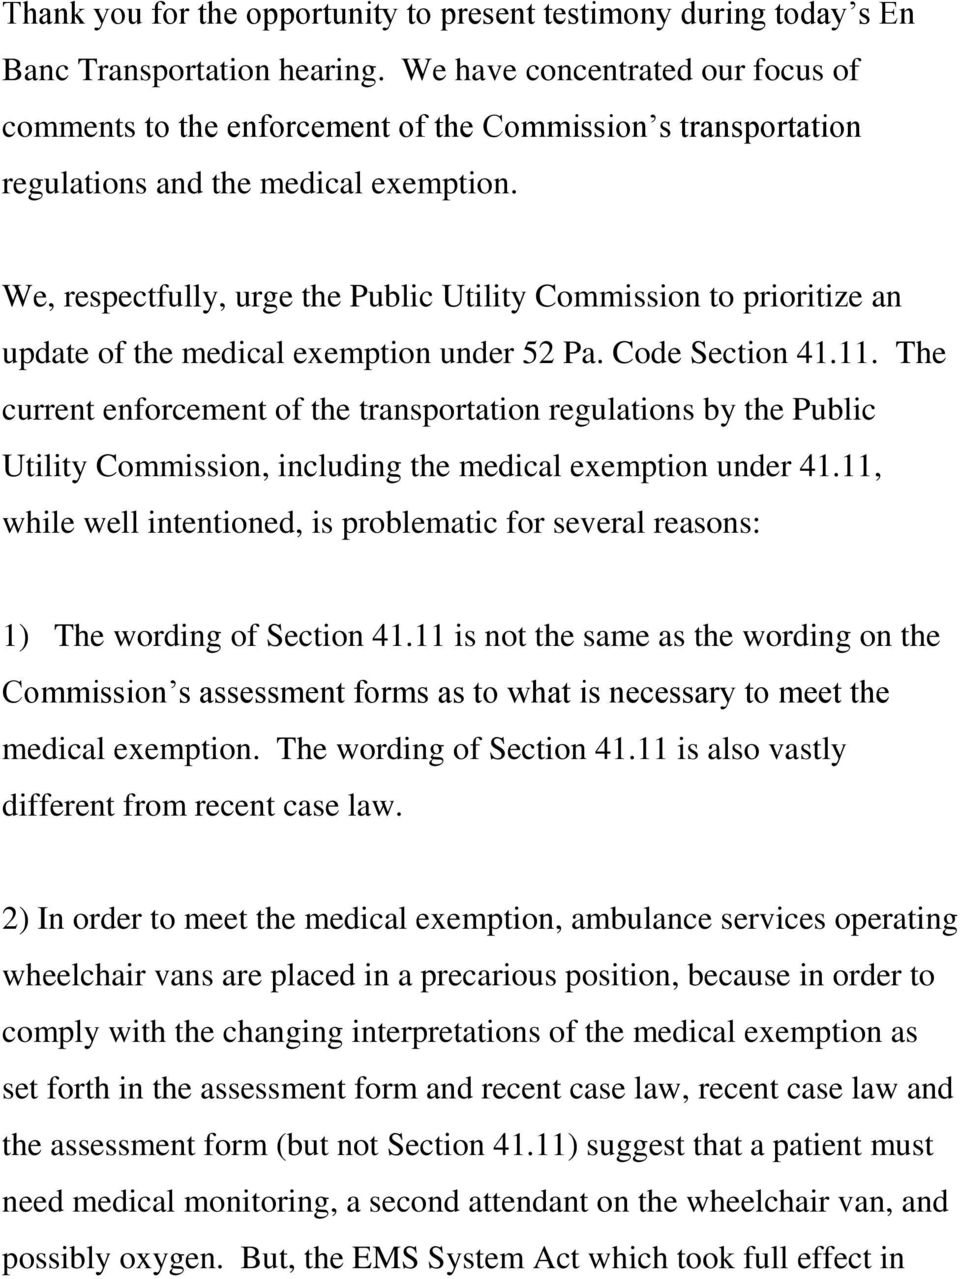 We, respectfully, urge the Public Utility Commission to prioritize an update of the medical exemption under 52 Pa. Code Section 41.11.